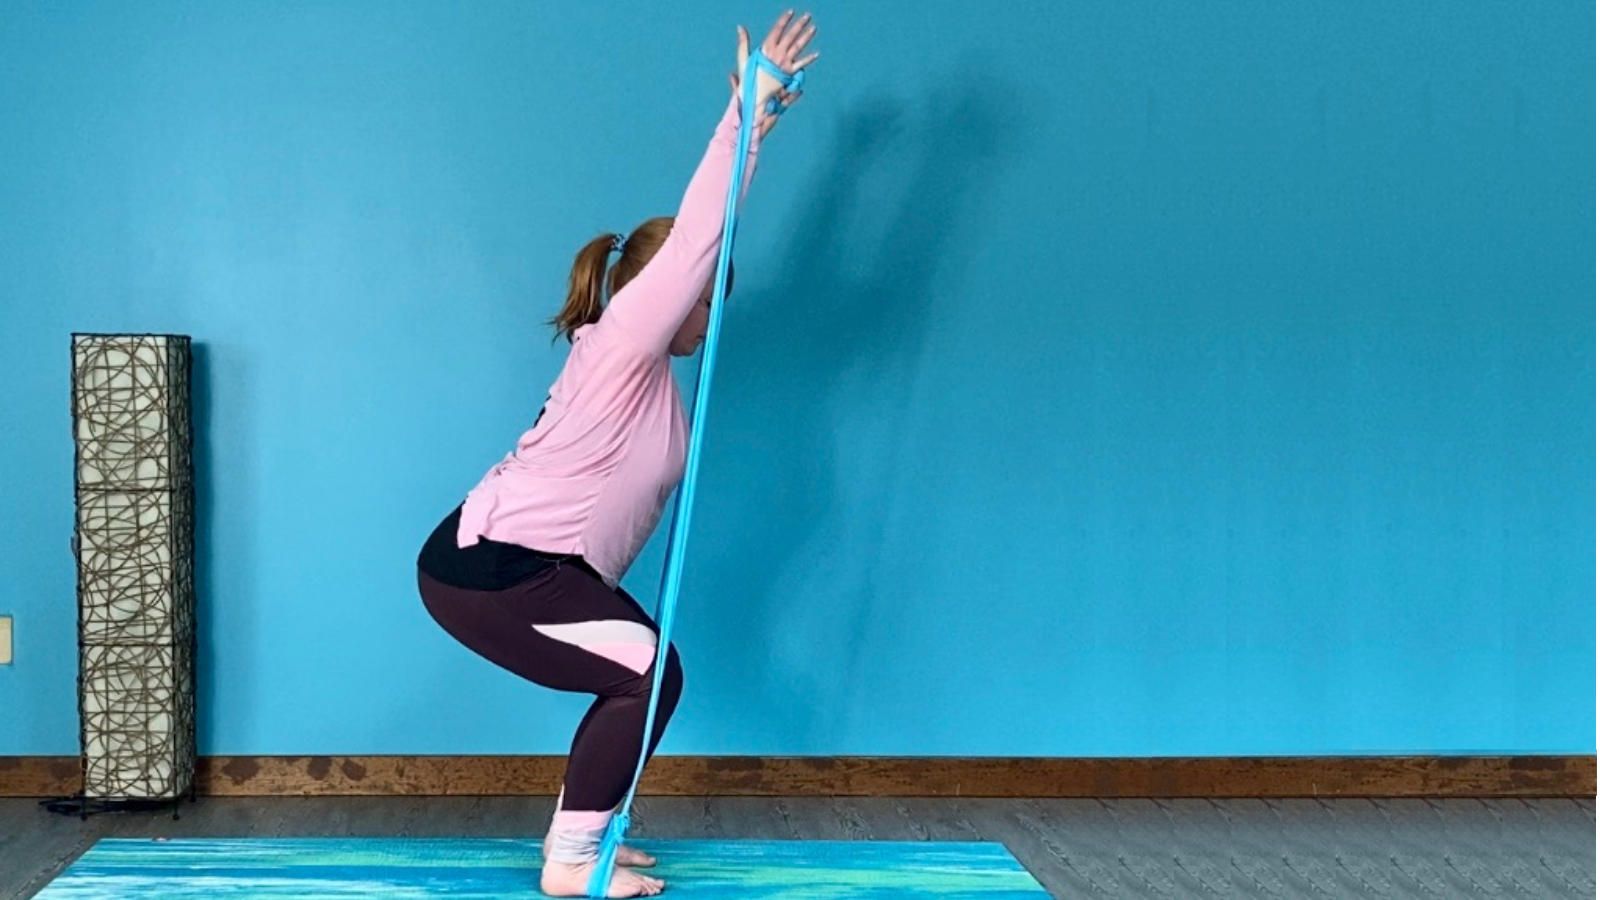 How to practice Chair Pose (Utkatasana) with therabands to bring focus to the arms